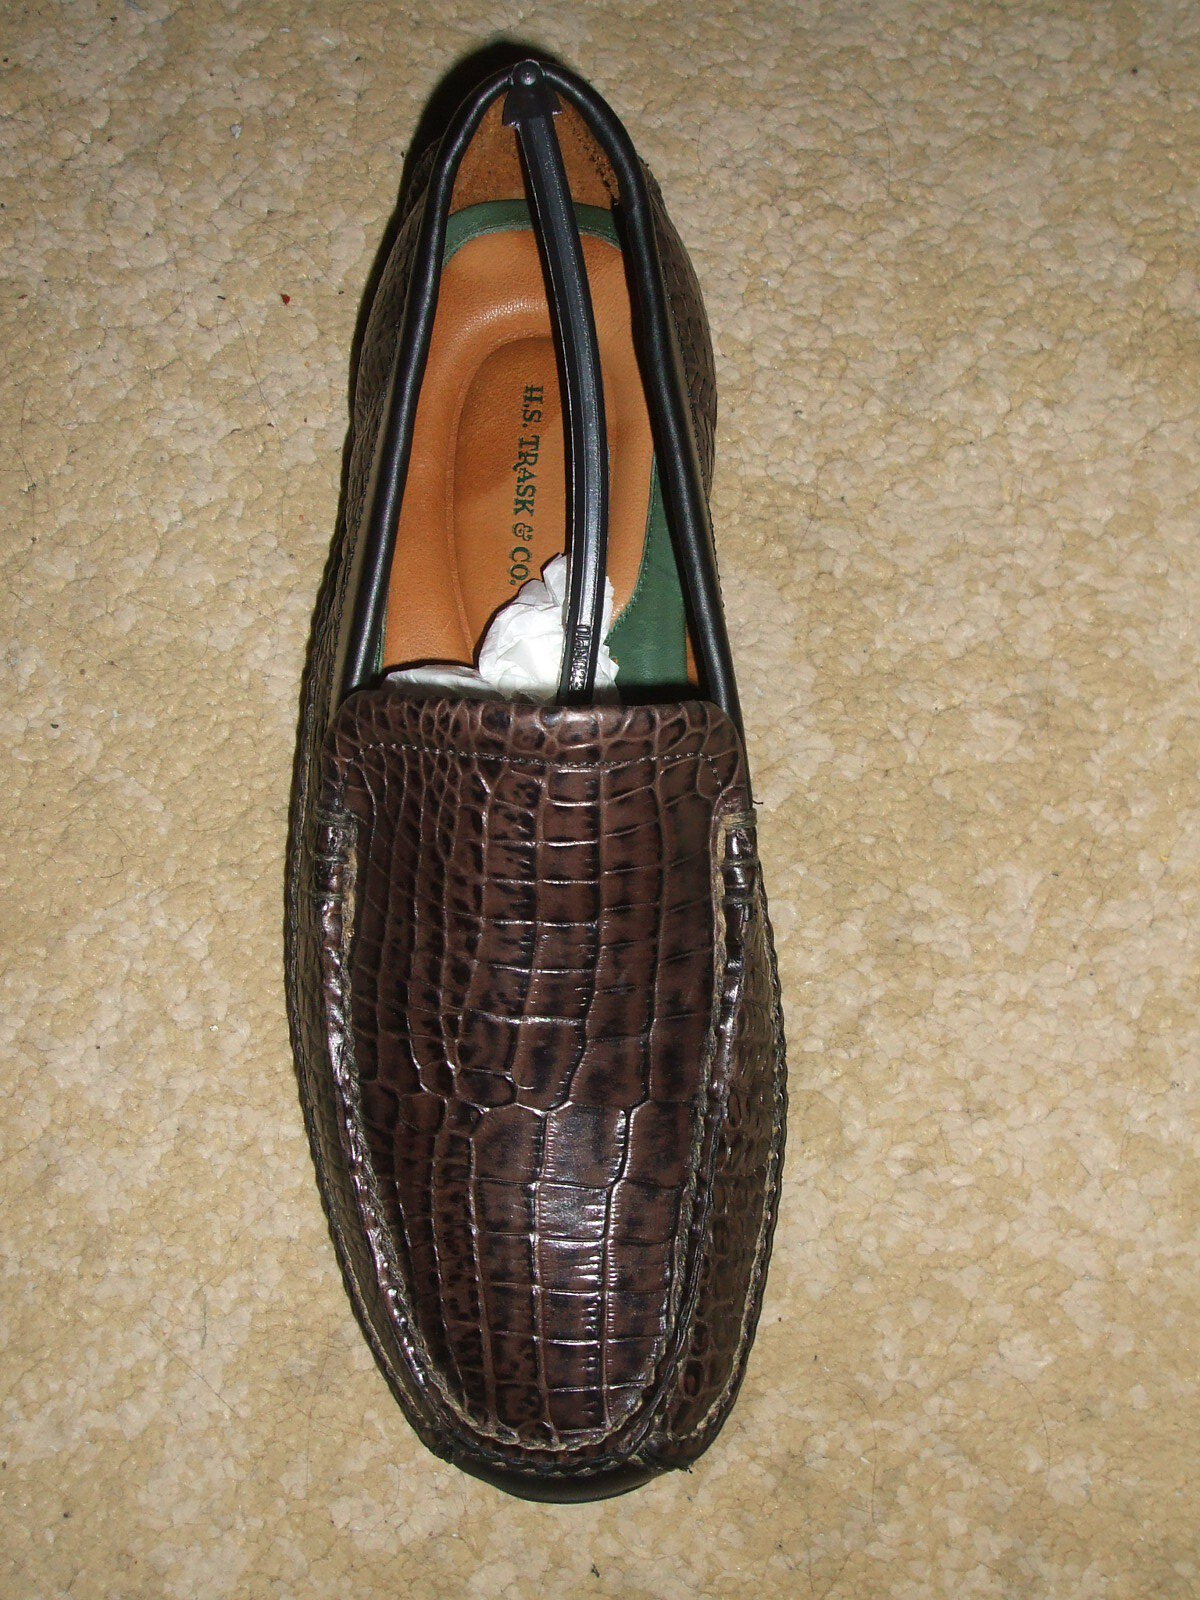 New H. S. Trask Choclolate Choco Croc Loafer 8 1 2 M Right shoes Only